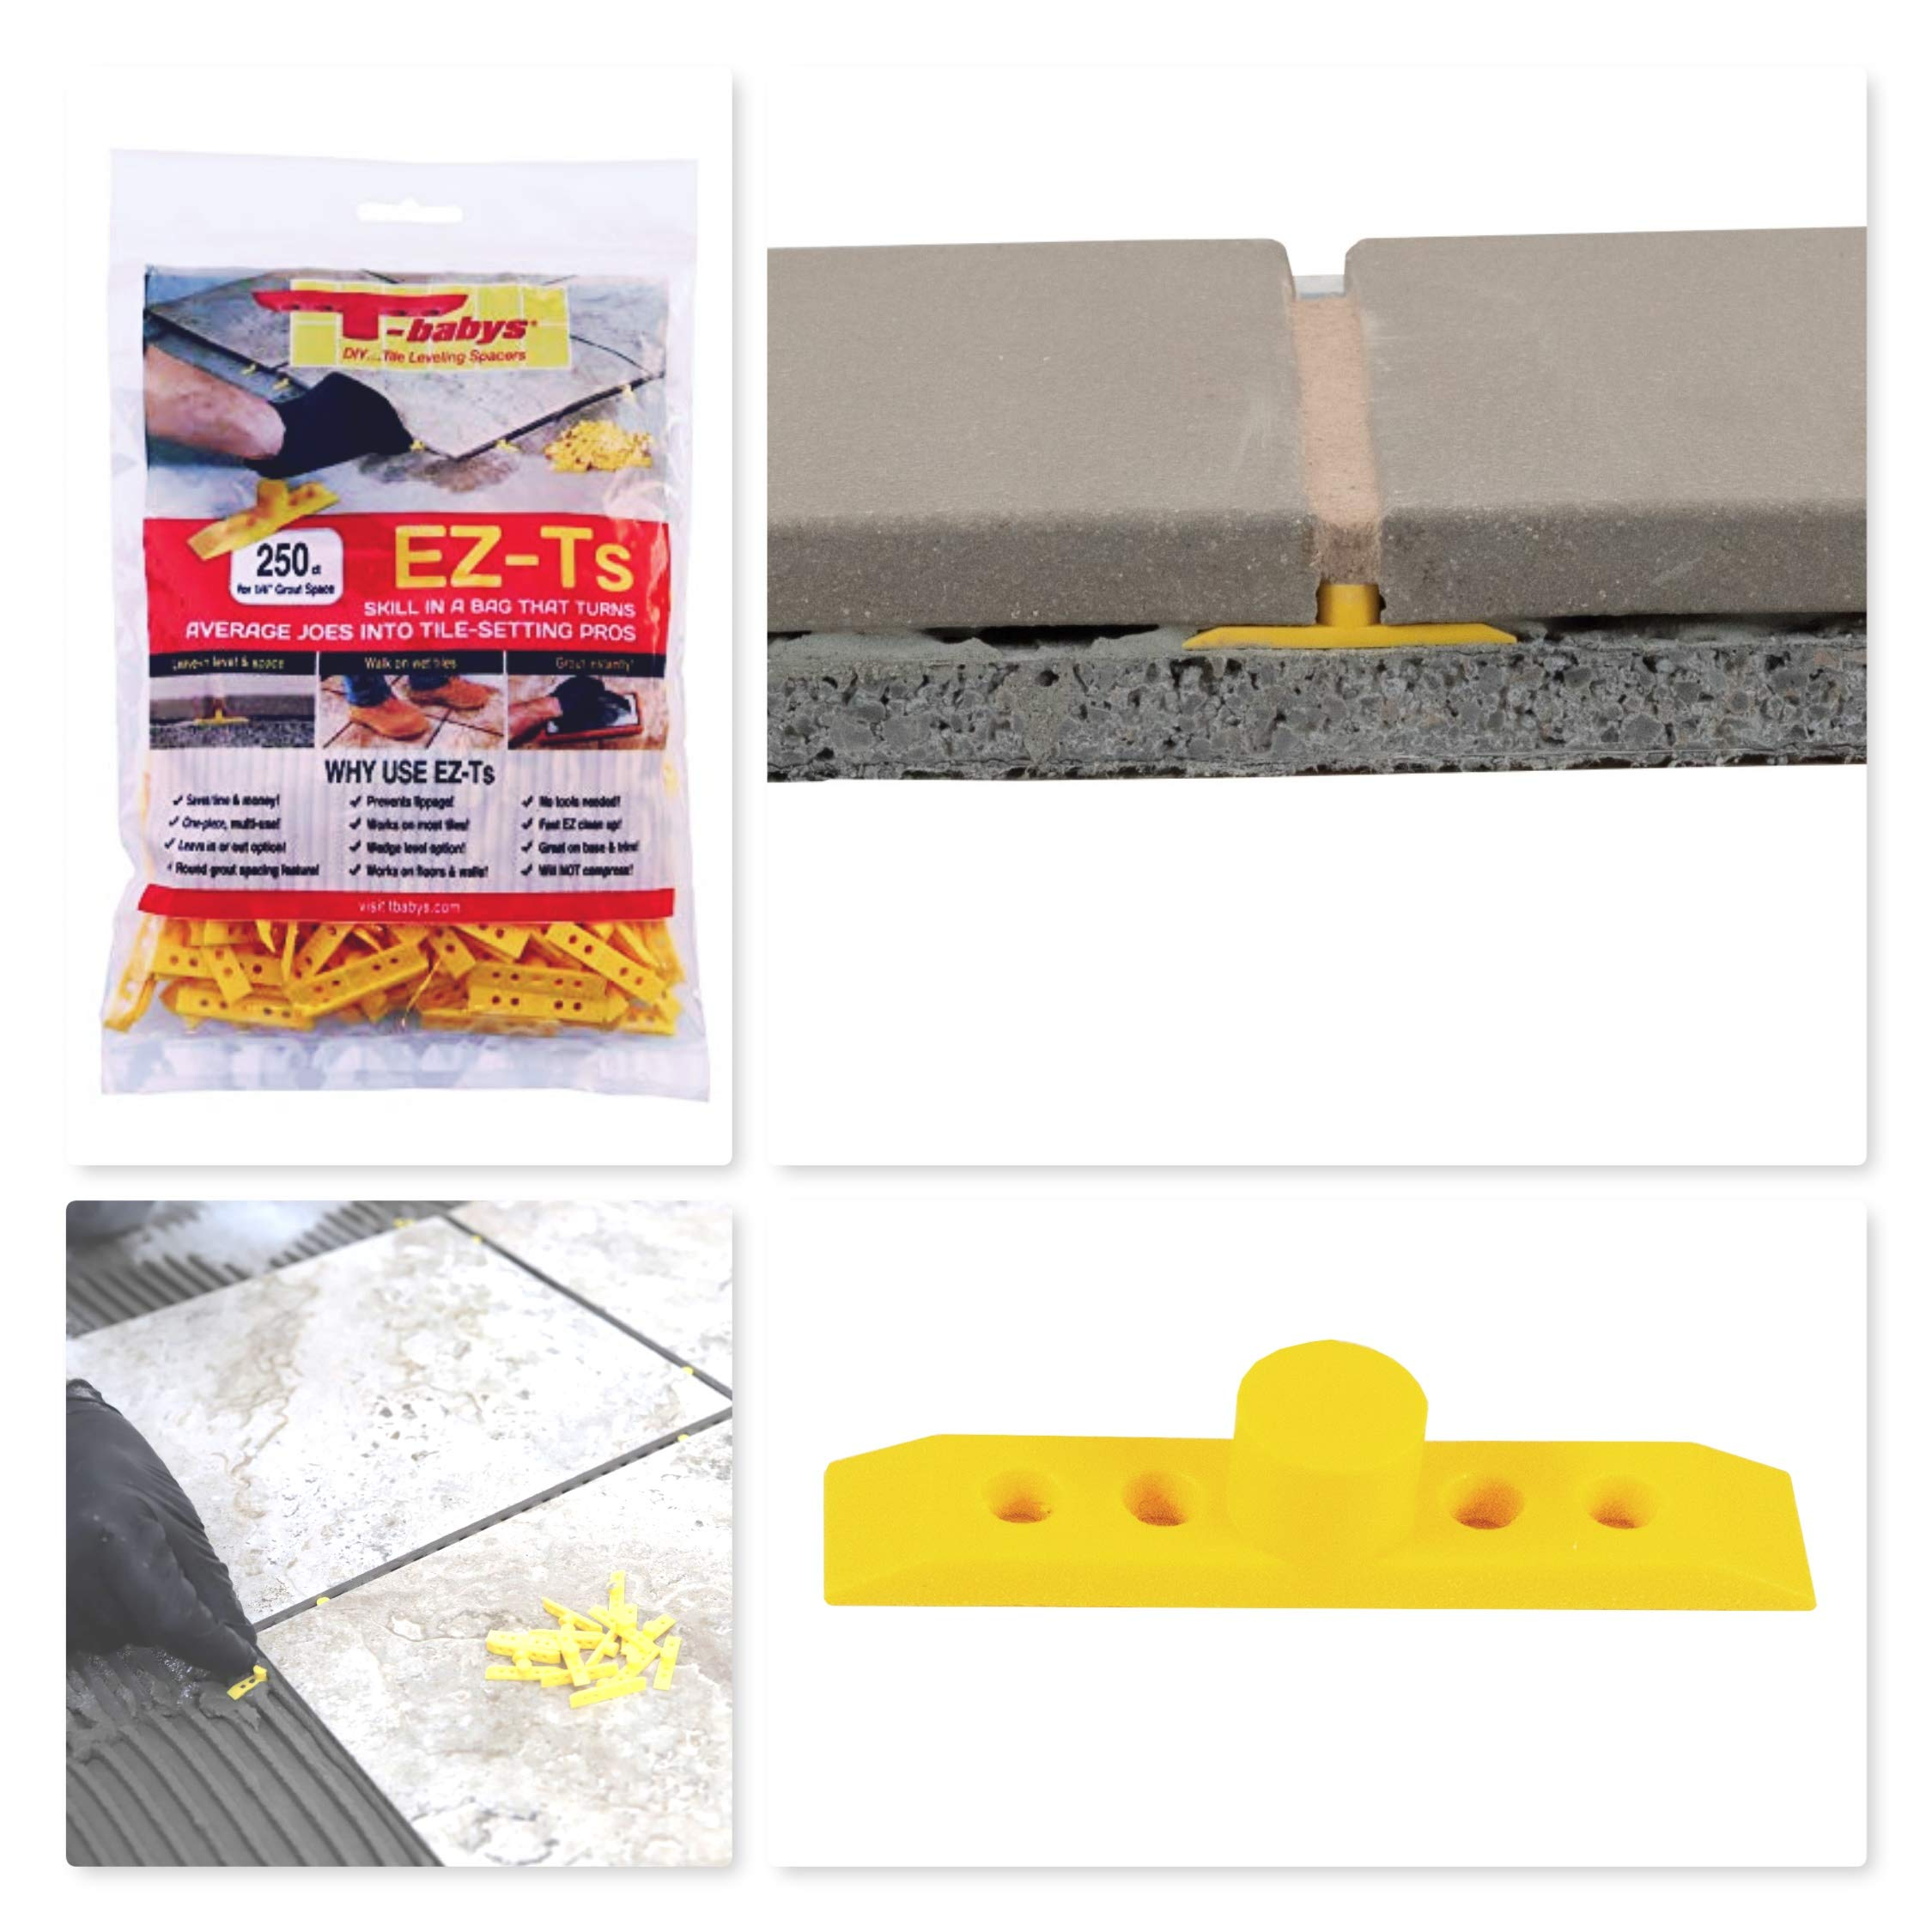 Tbabys - EZ-Ts DIY Leave-in Tile Leveling Grout Spacers 1/4'' - 250ct